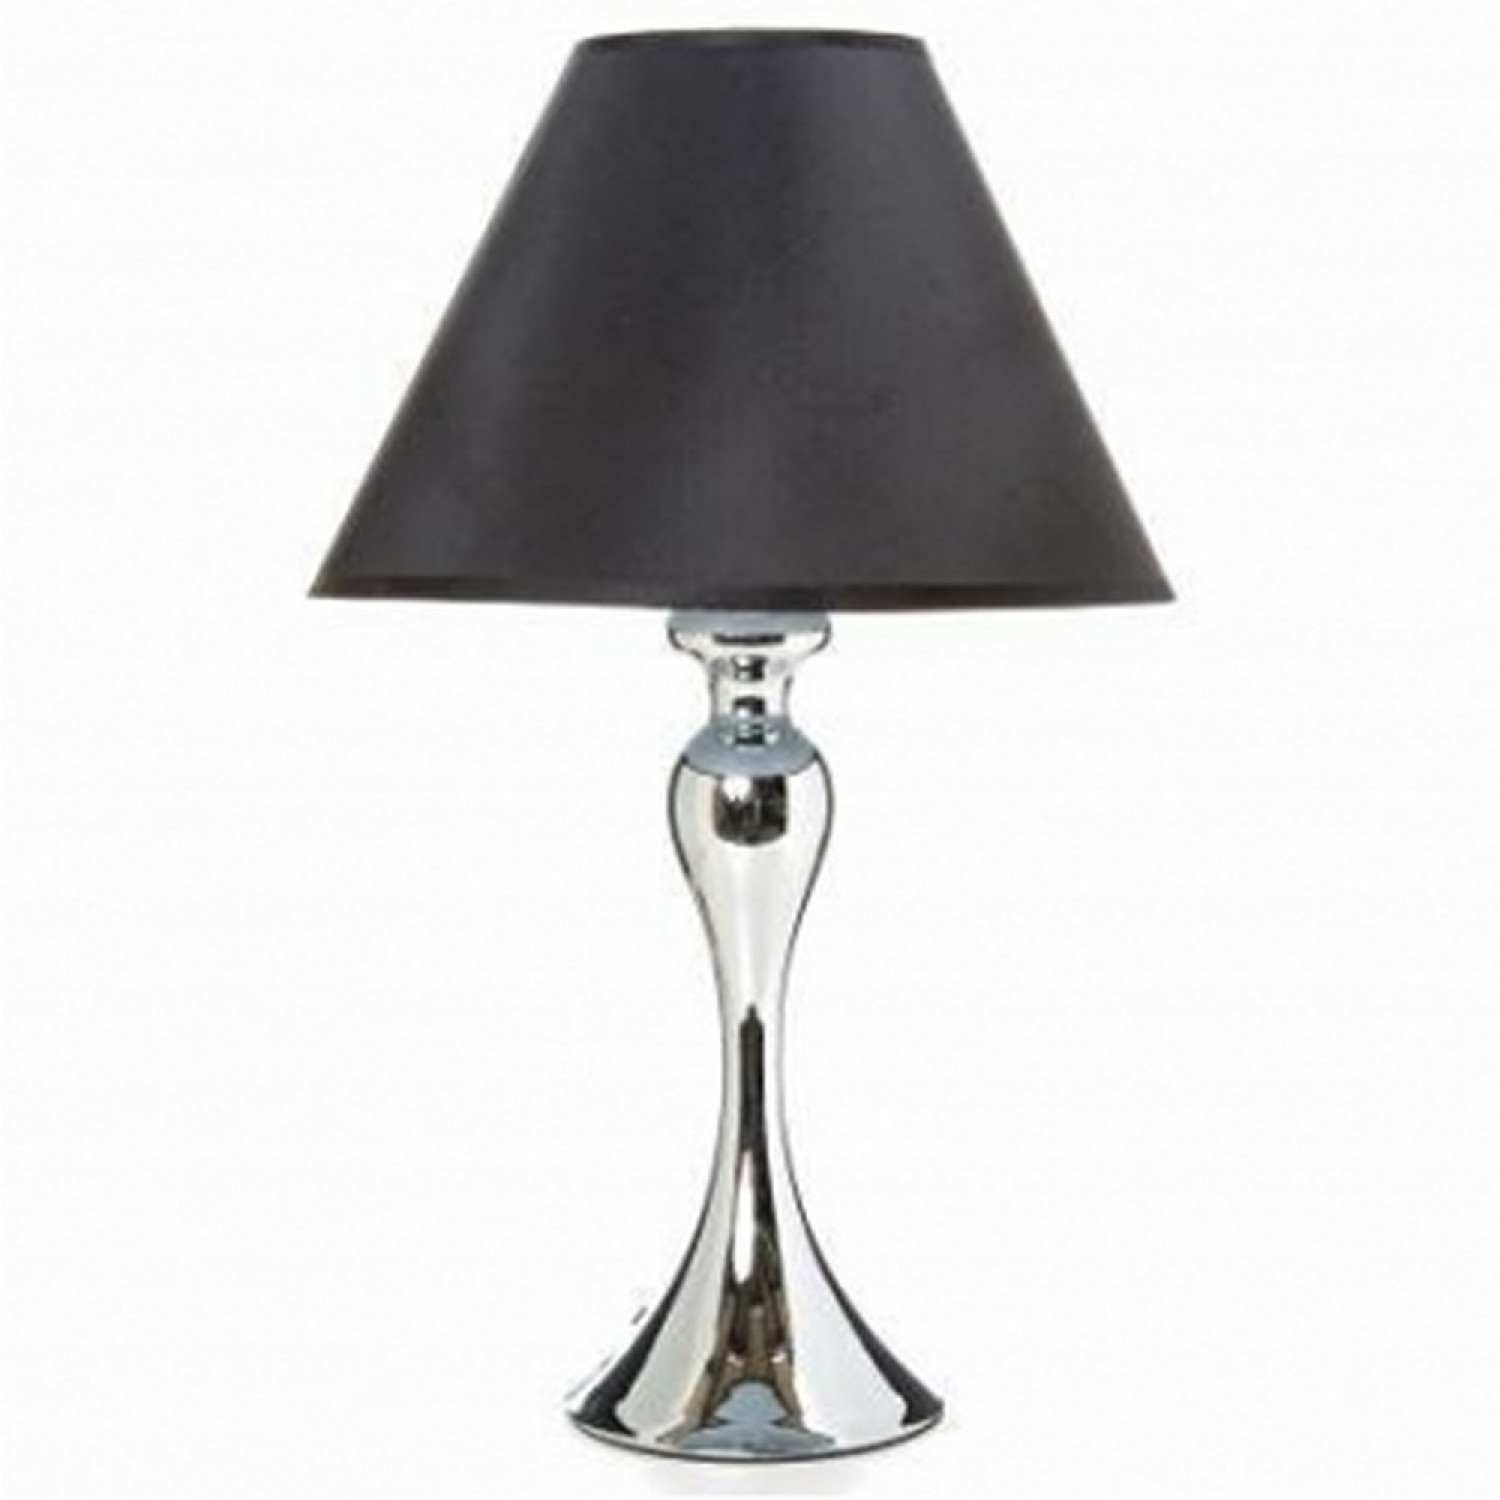 lampe de chevet lampe de chevet pied mtal argent noir with. Black Bedroom Furniture Sets. Home Design Ideas